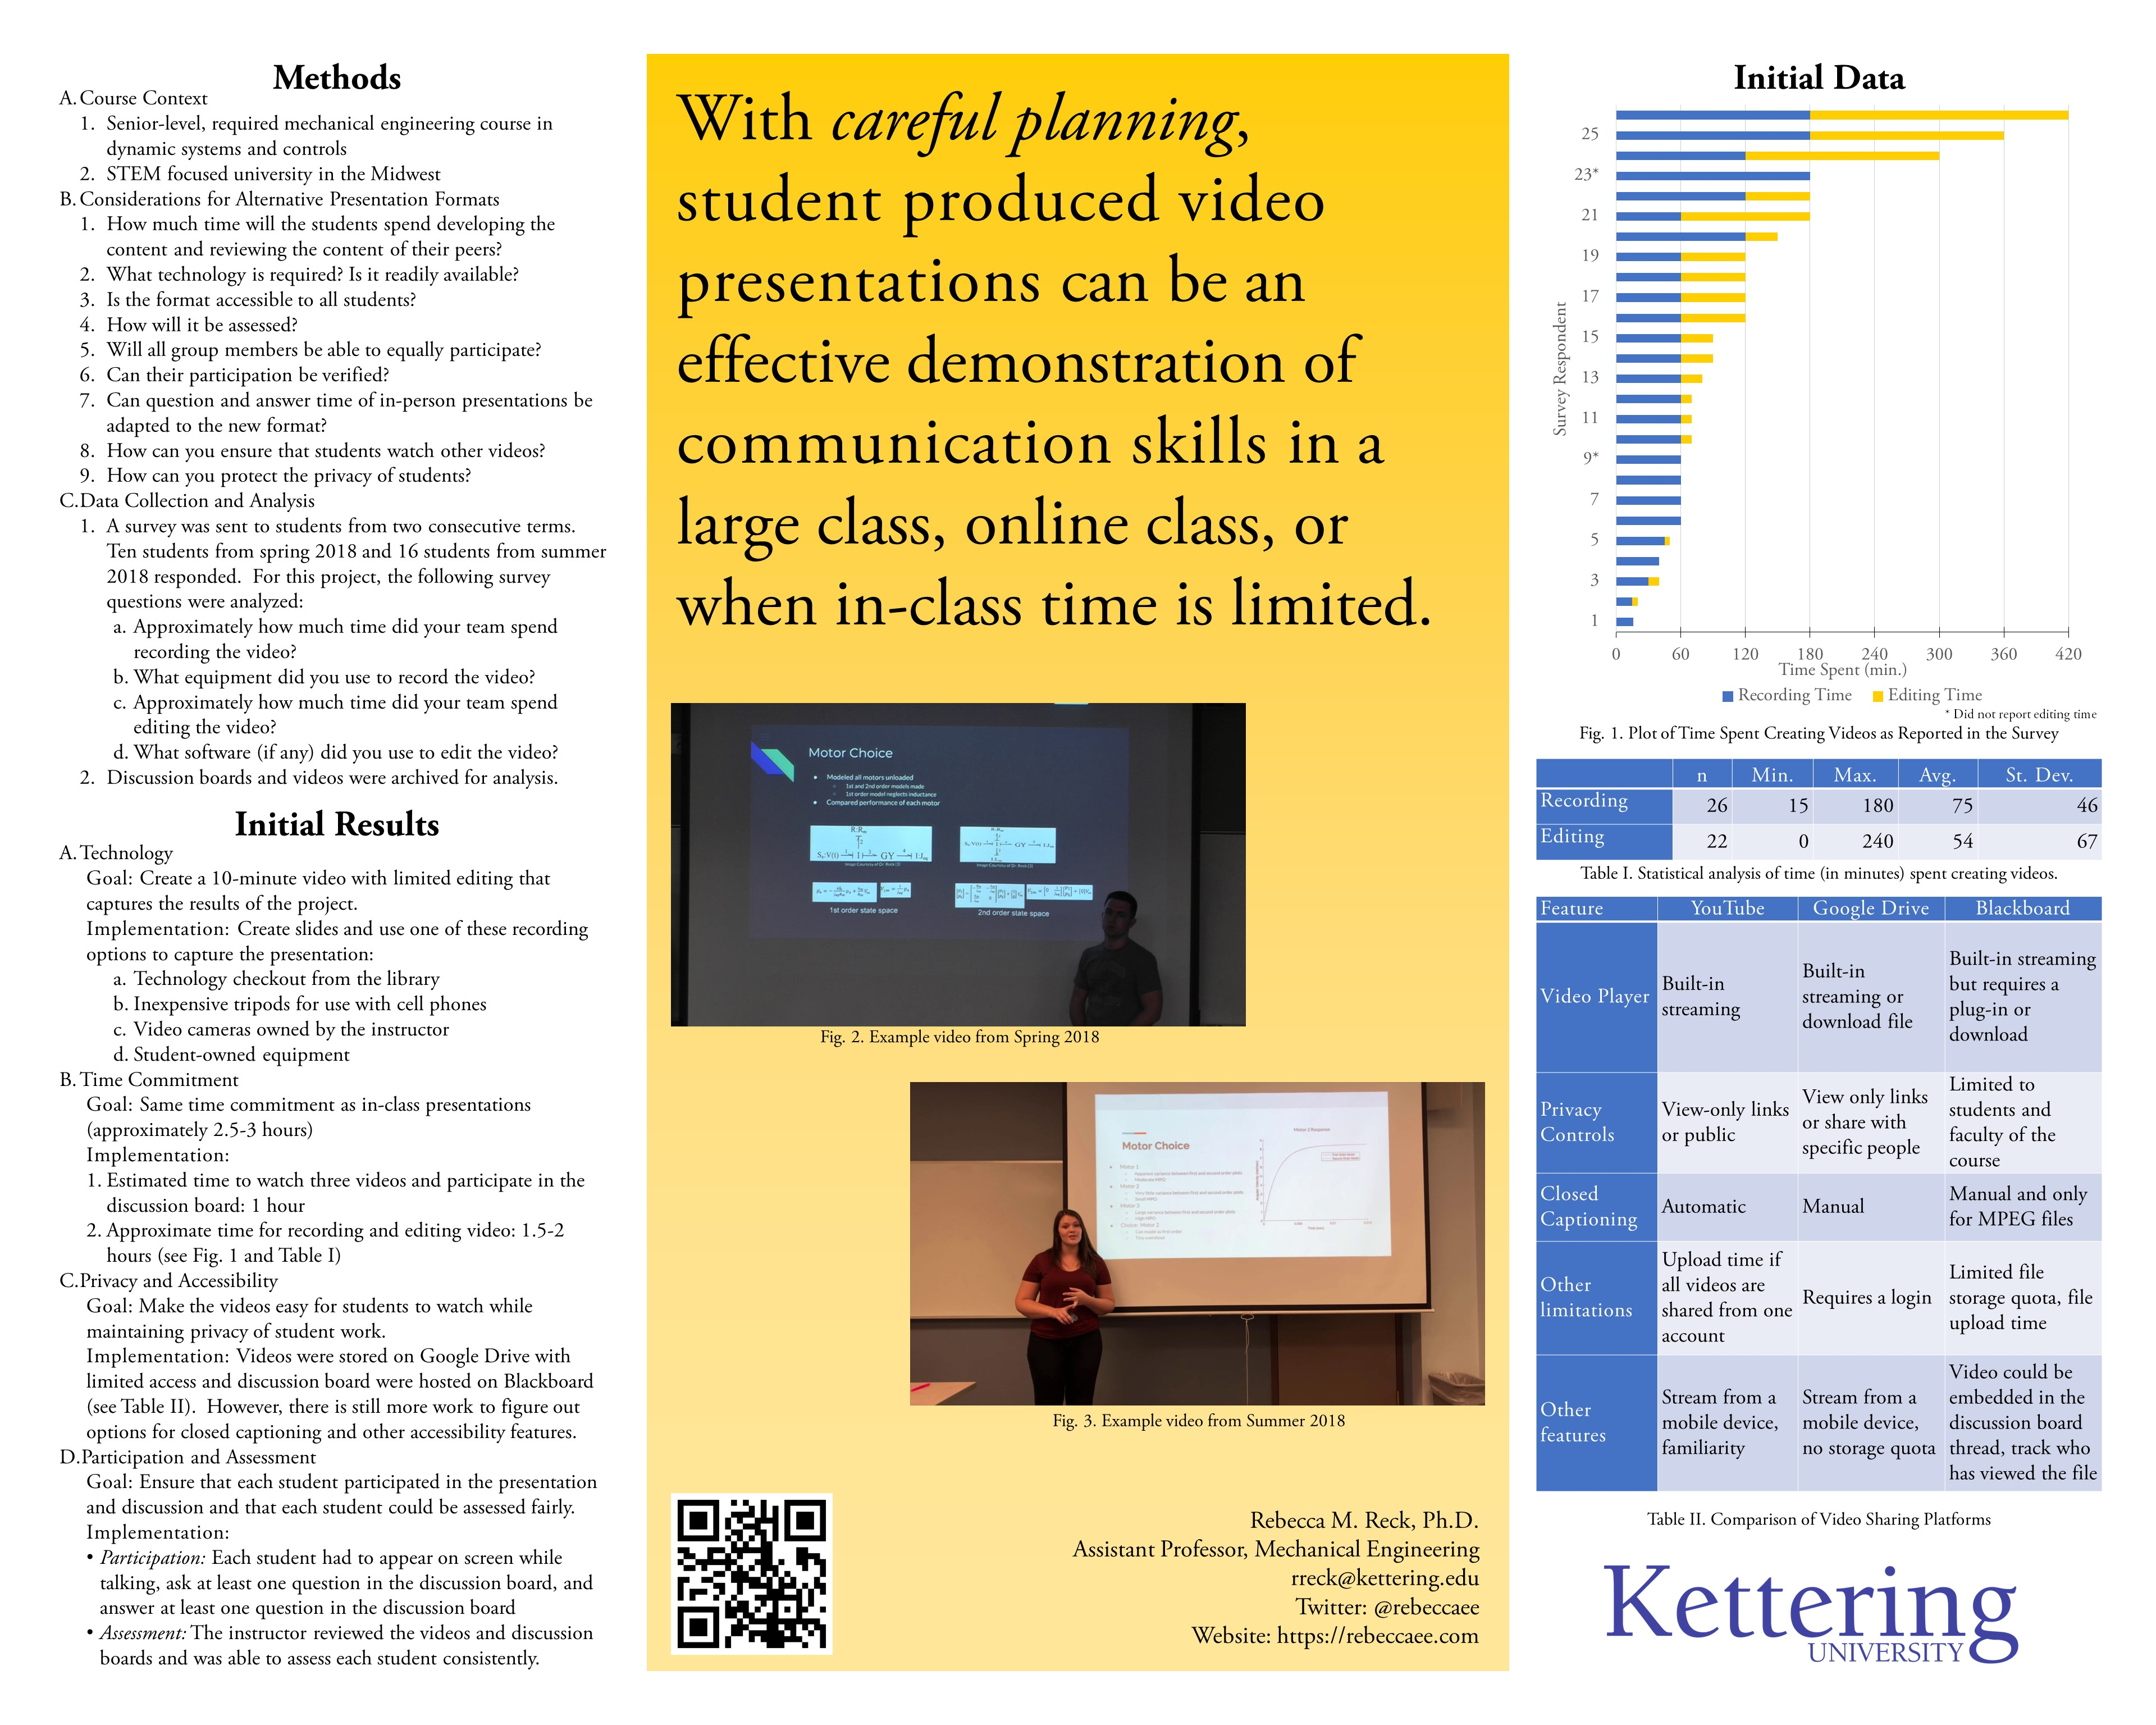 Research poster with data from a paper about logistics of a video assignment